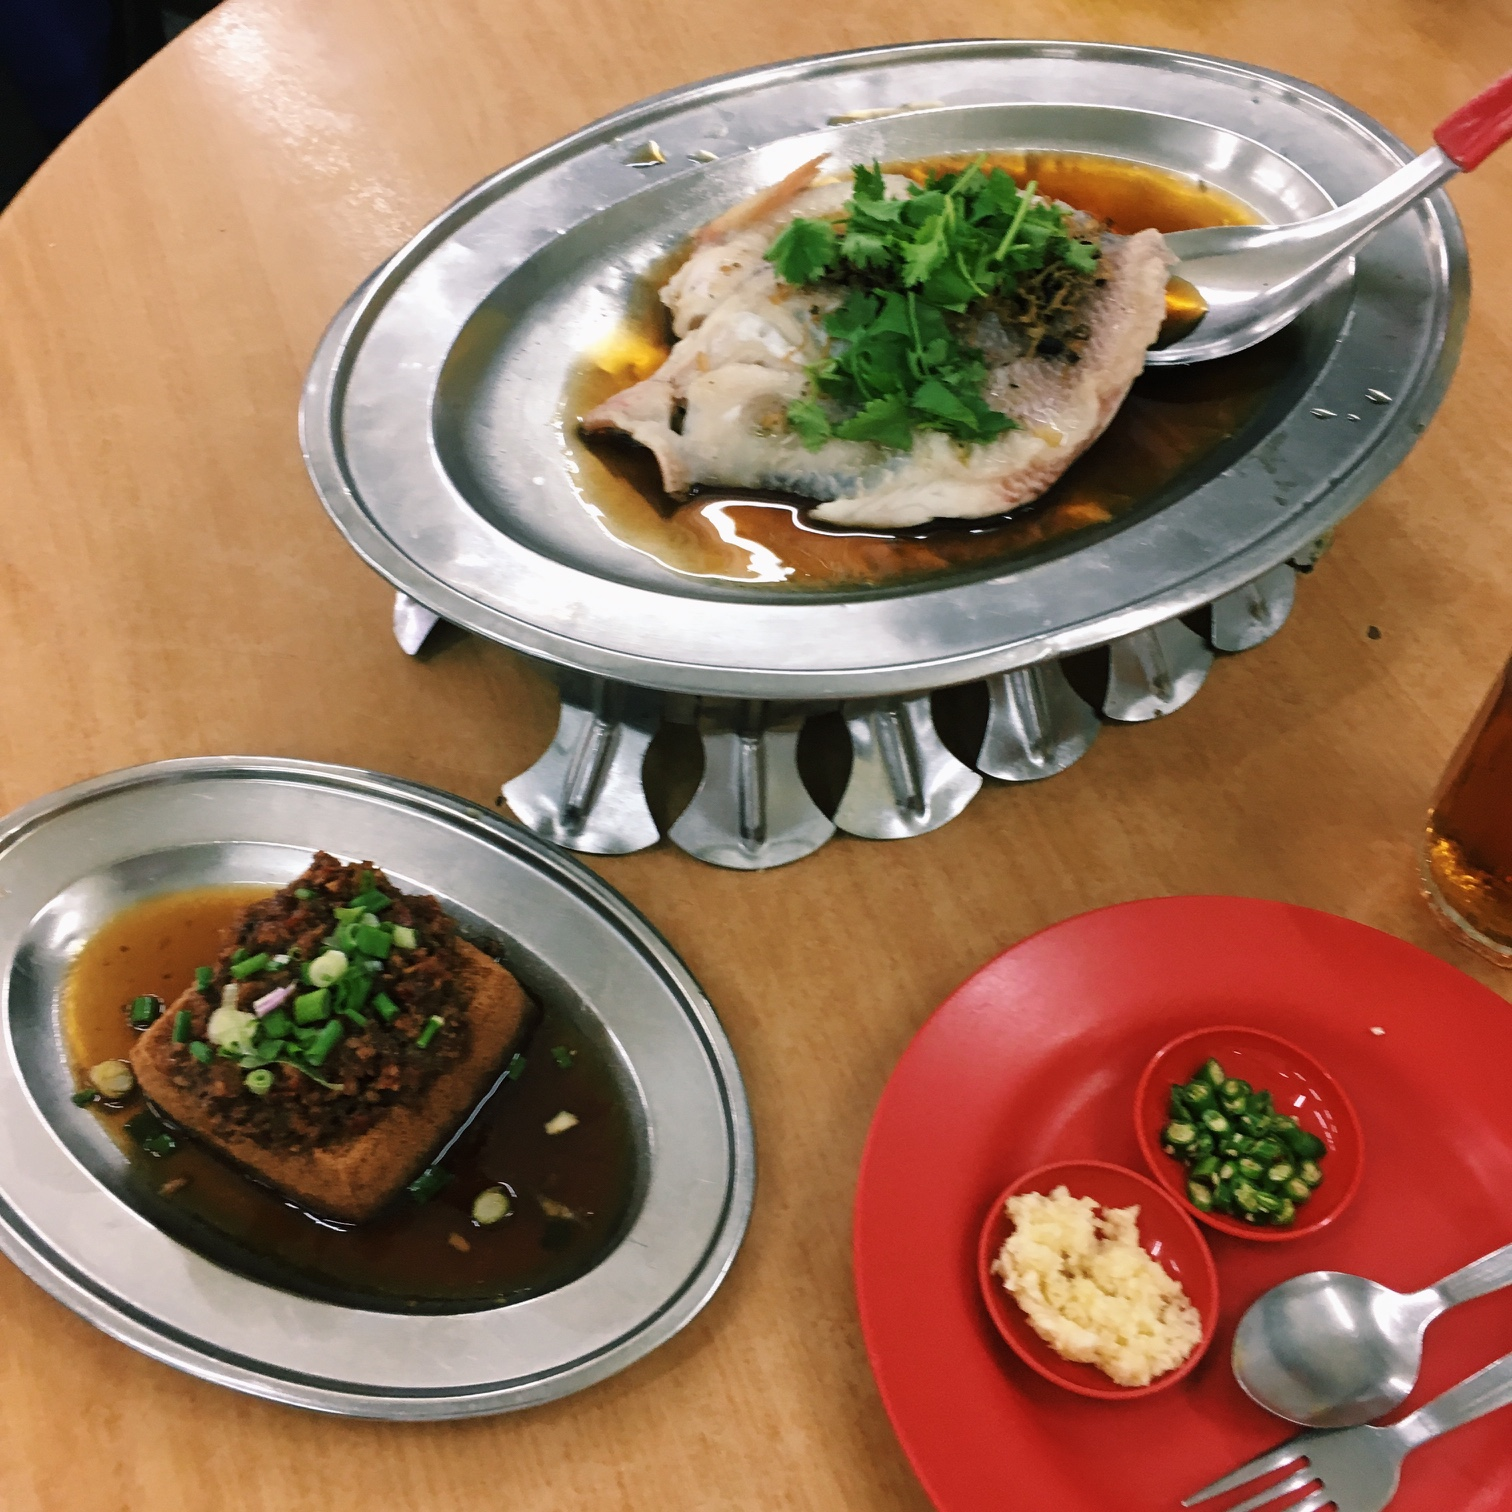 For Reliably Fresh Steamed Fish